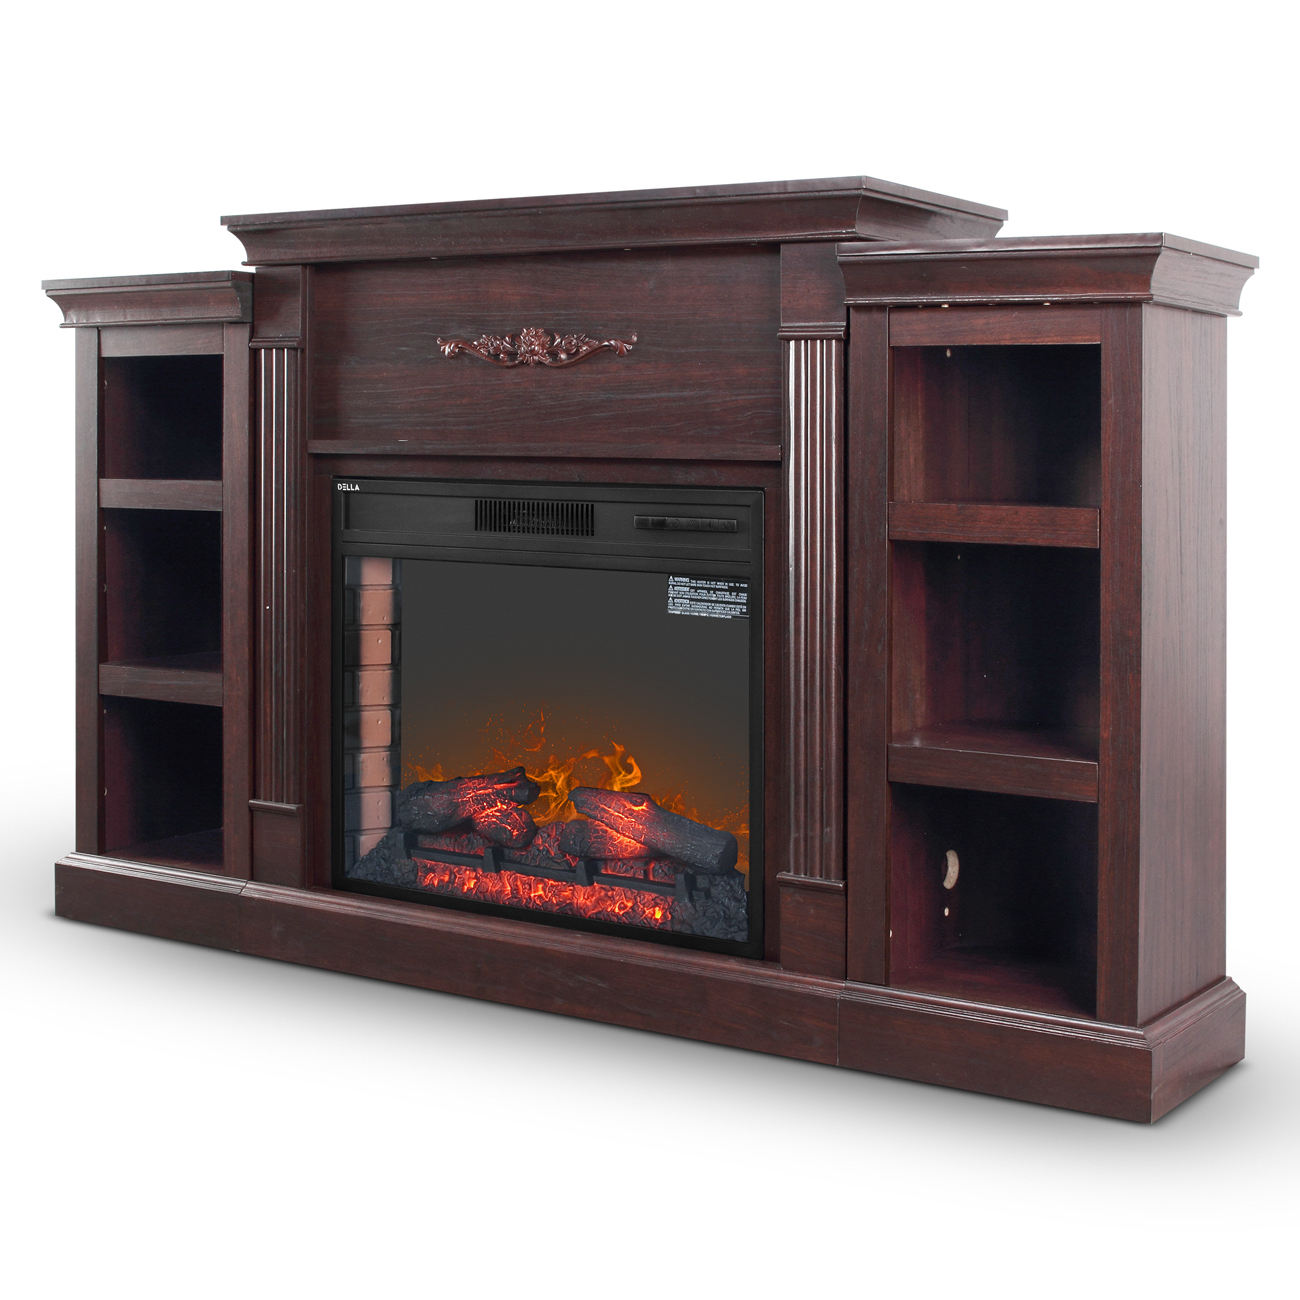 "28"" Traditional Electric Infrared Fireplace Heater Wood Mant"